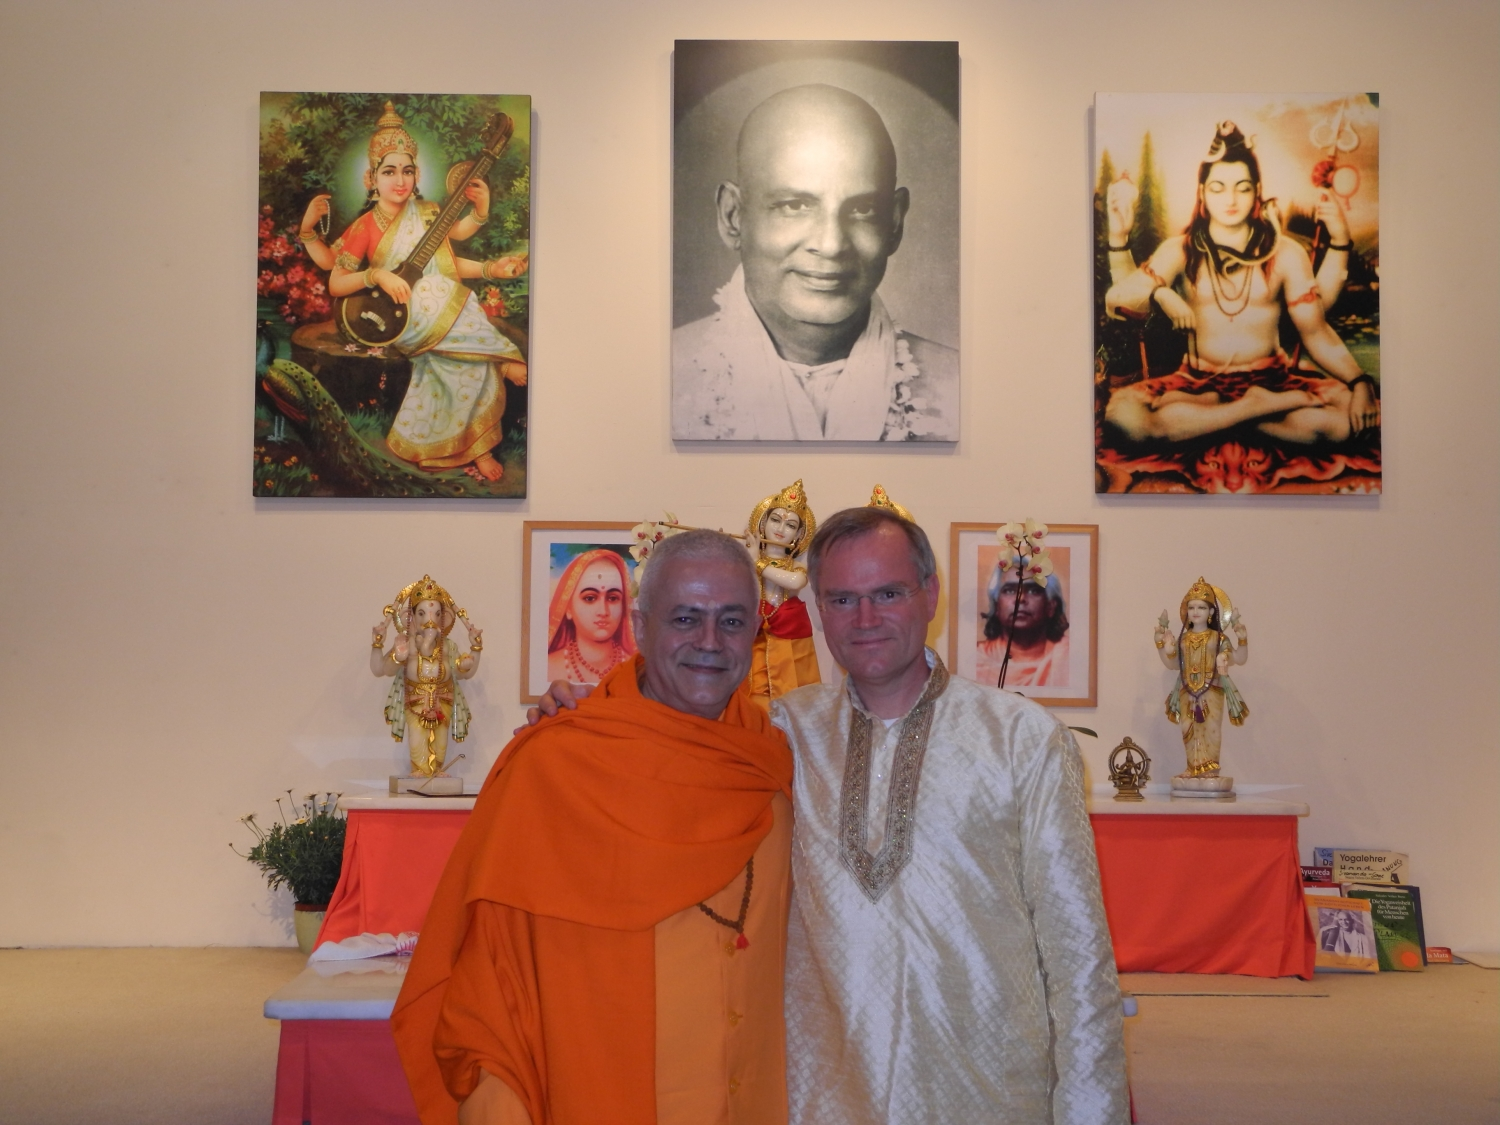 Meeting of H.H. Jagat Guru Amrta Sūryānanda Mahā Rāja with Master Sukadev Bretz - Yoga Vidya, Bad Meinberg, Germany - 2012, March